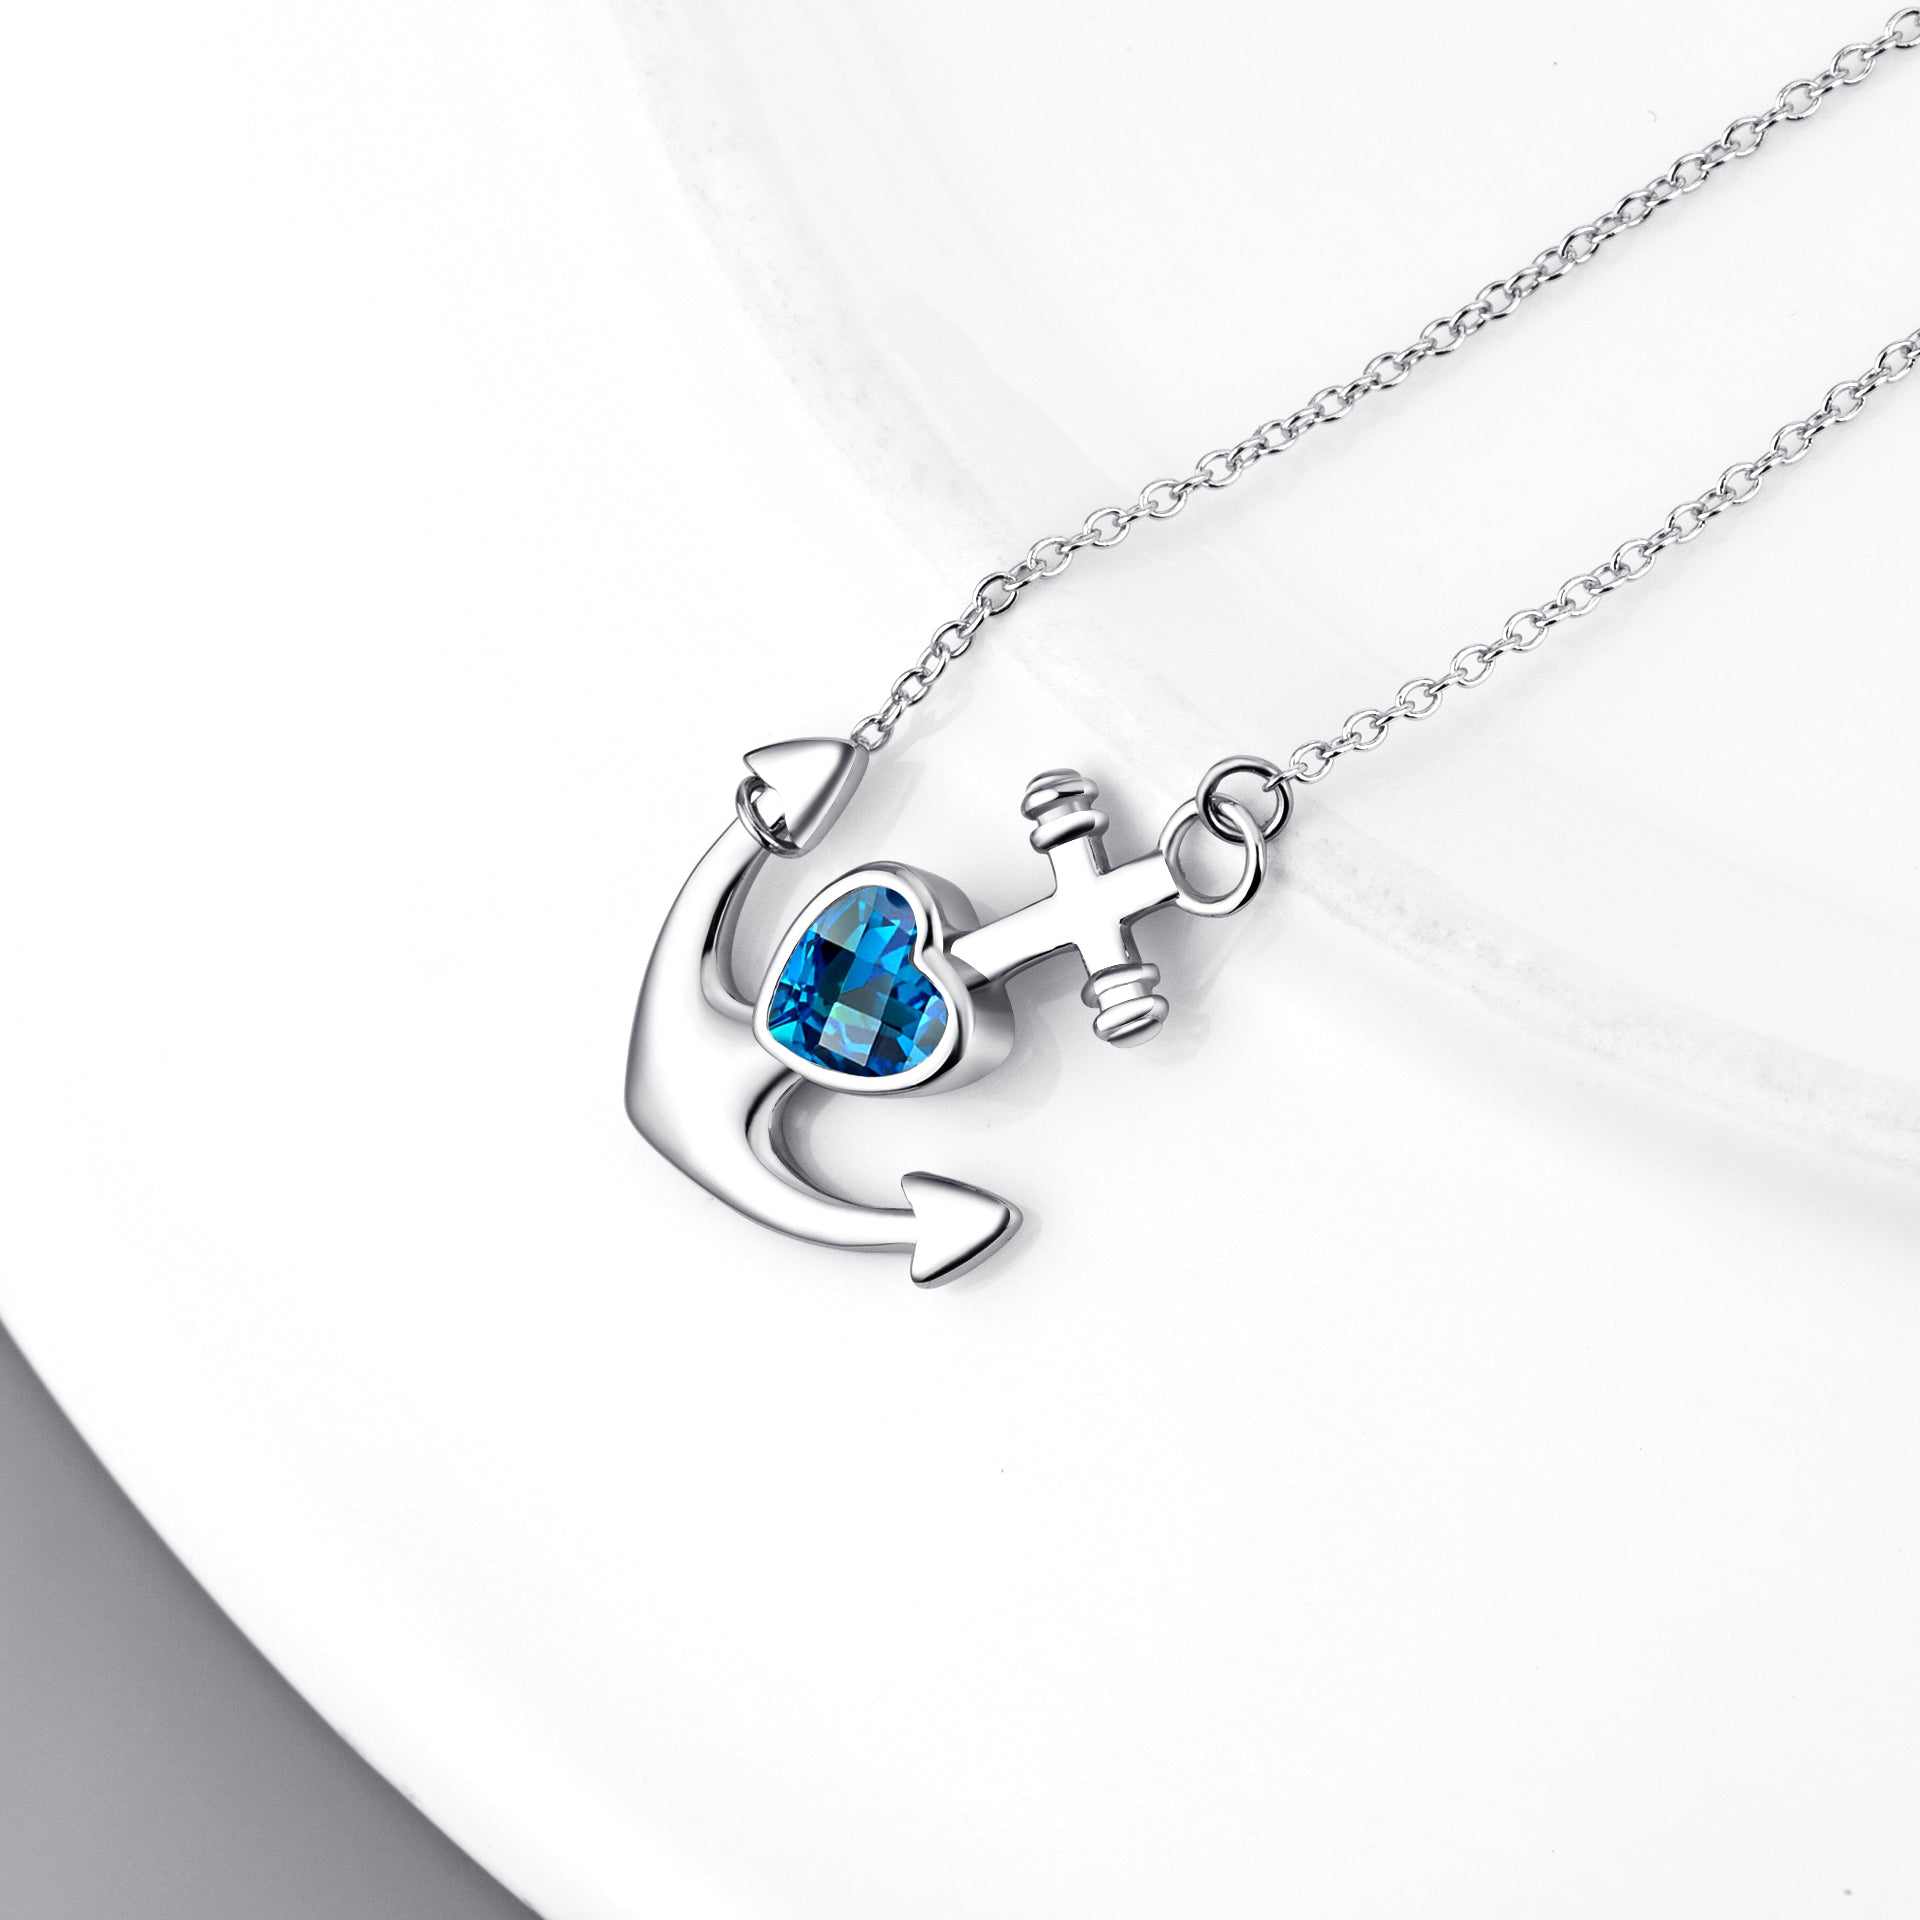 Silver factory price anchor necklace with blue zirconia stone